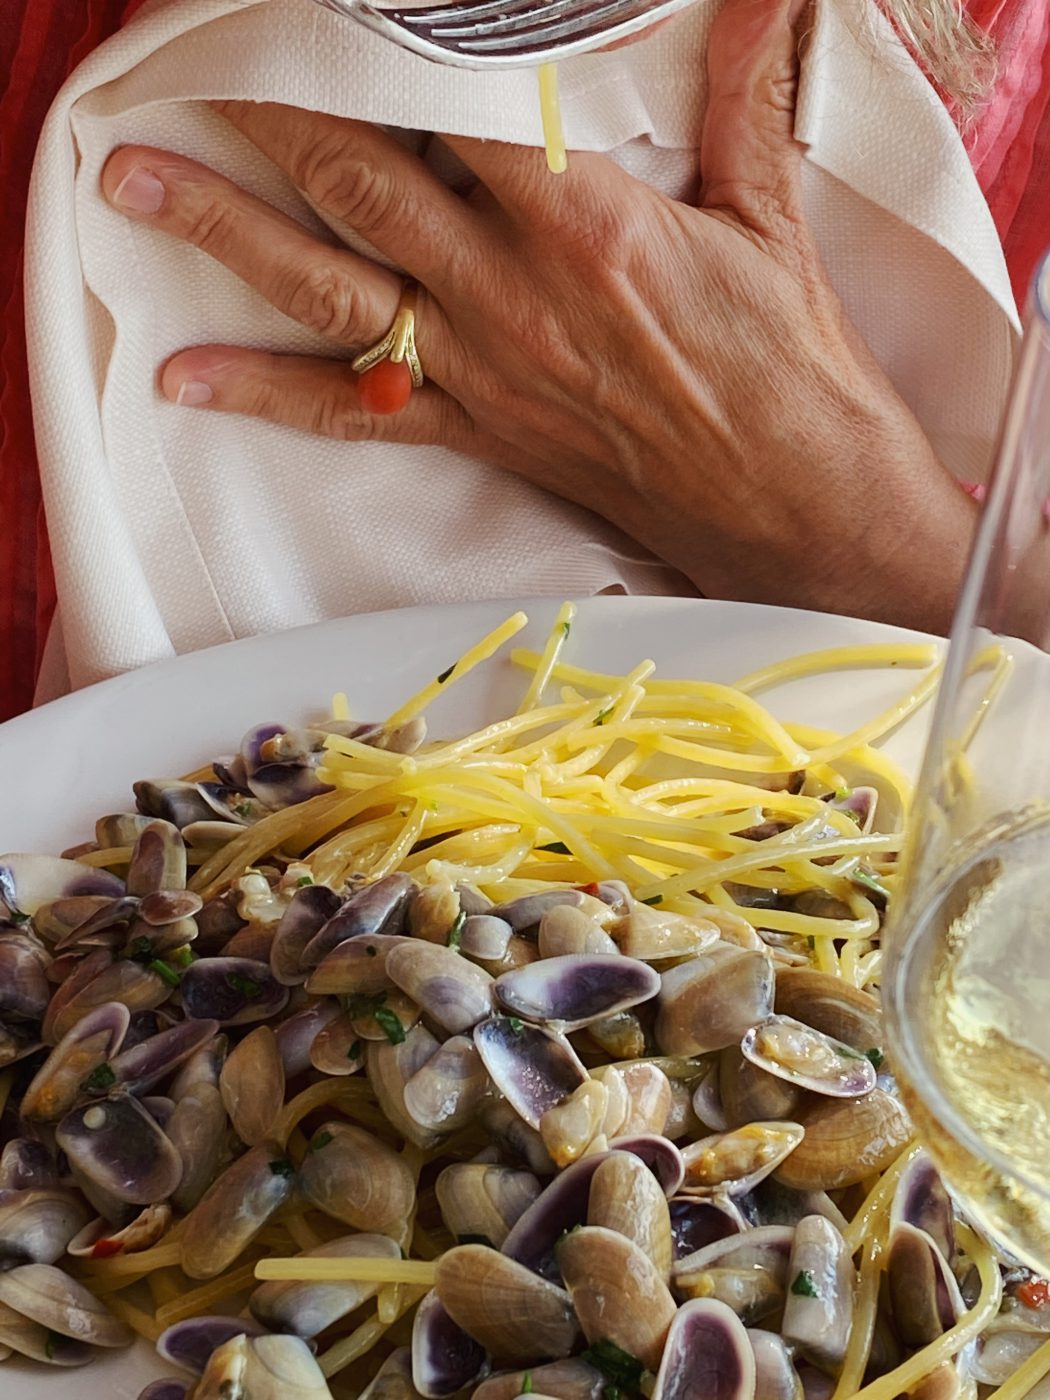 An Unlikely Match – Fish and Cheese in the Italian Cuisine